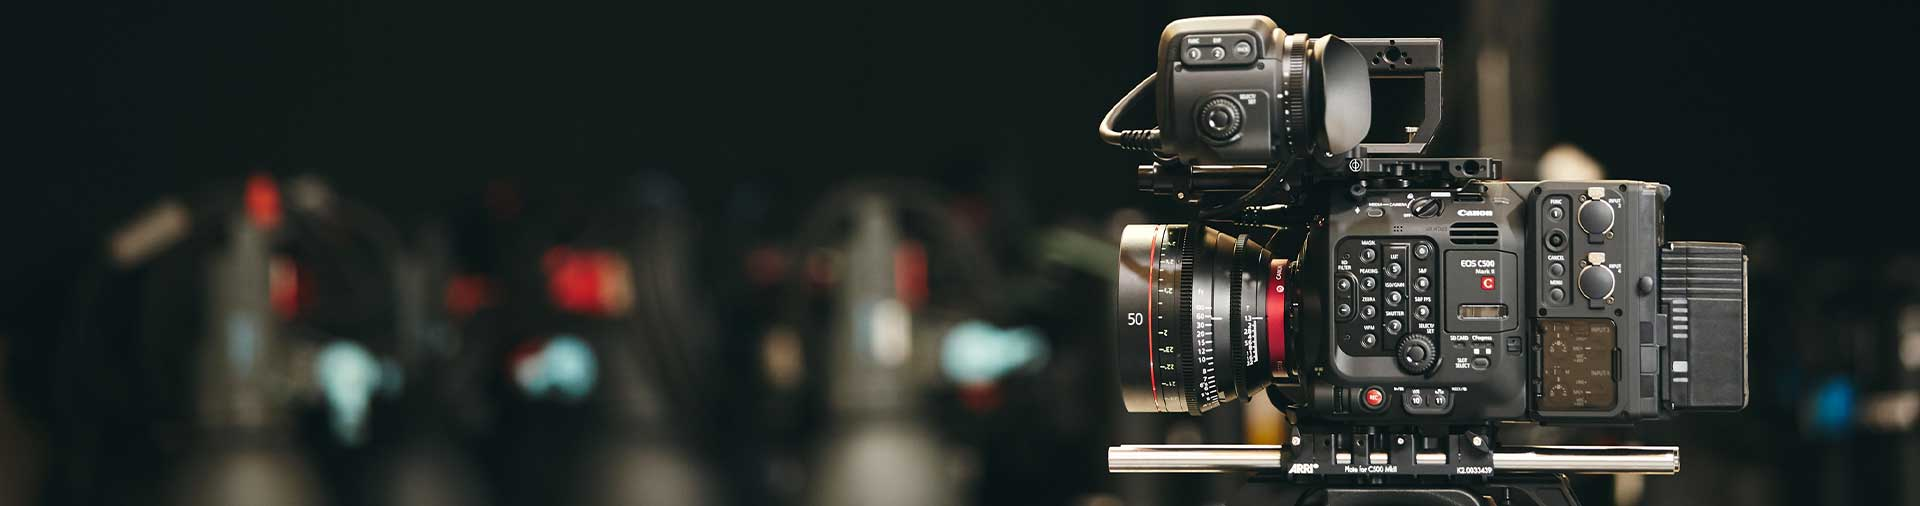 the-canon-c500-mark-ii-lands-at-sunstudios-image-by-simon-everiss